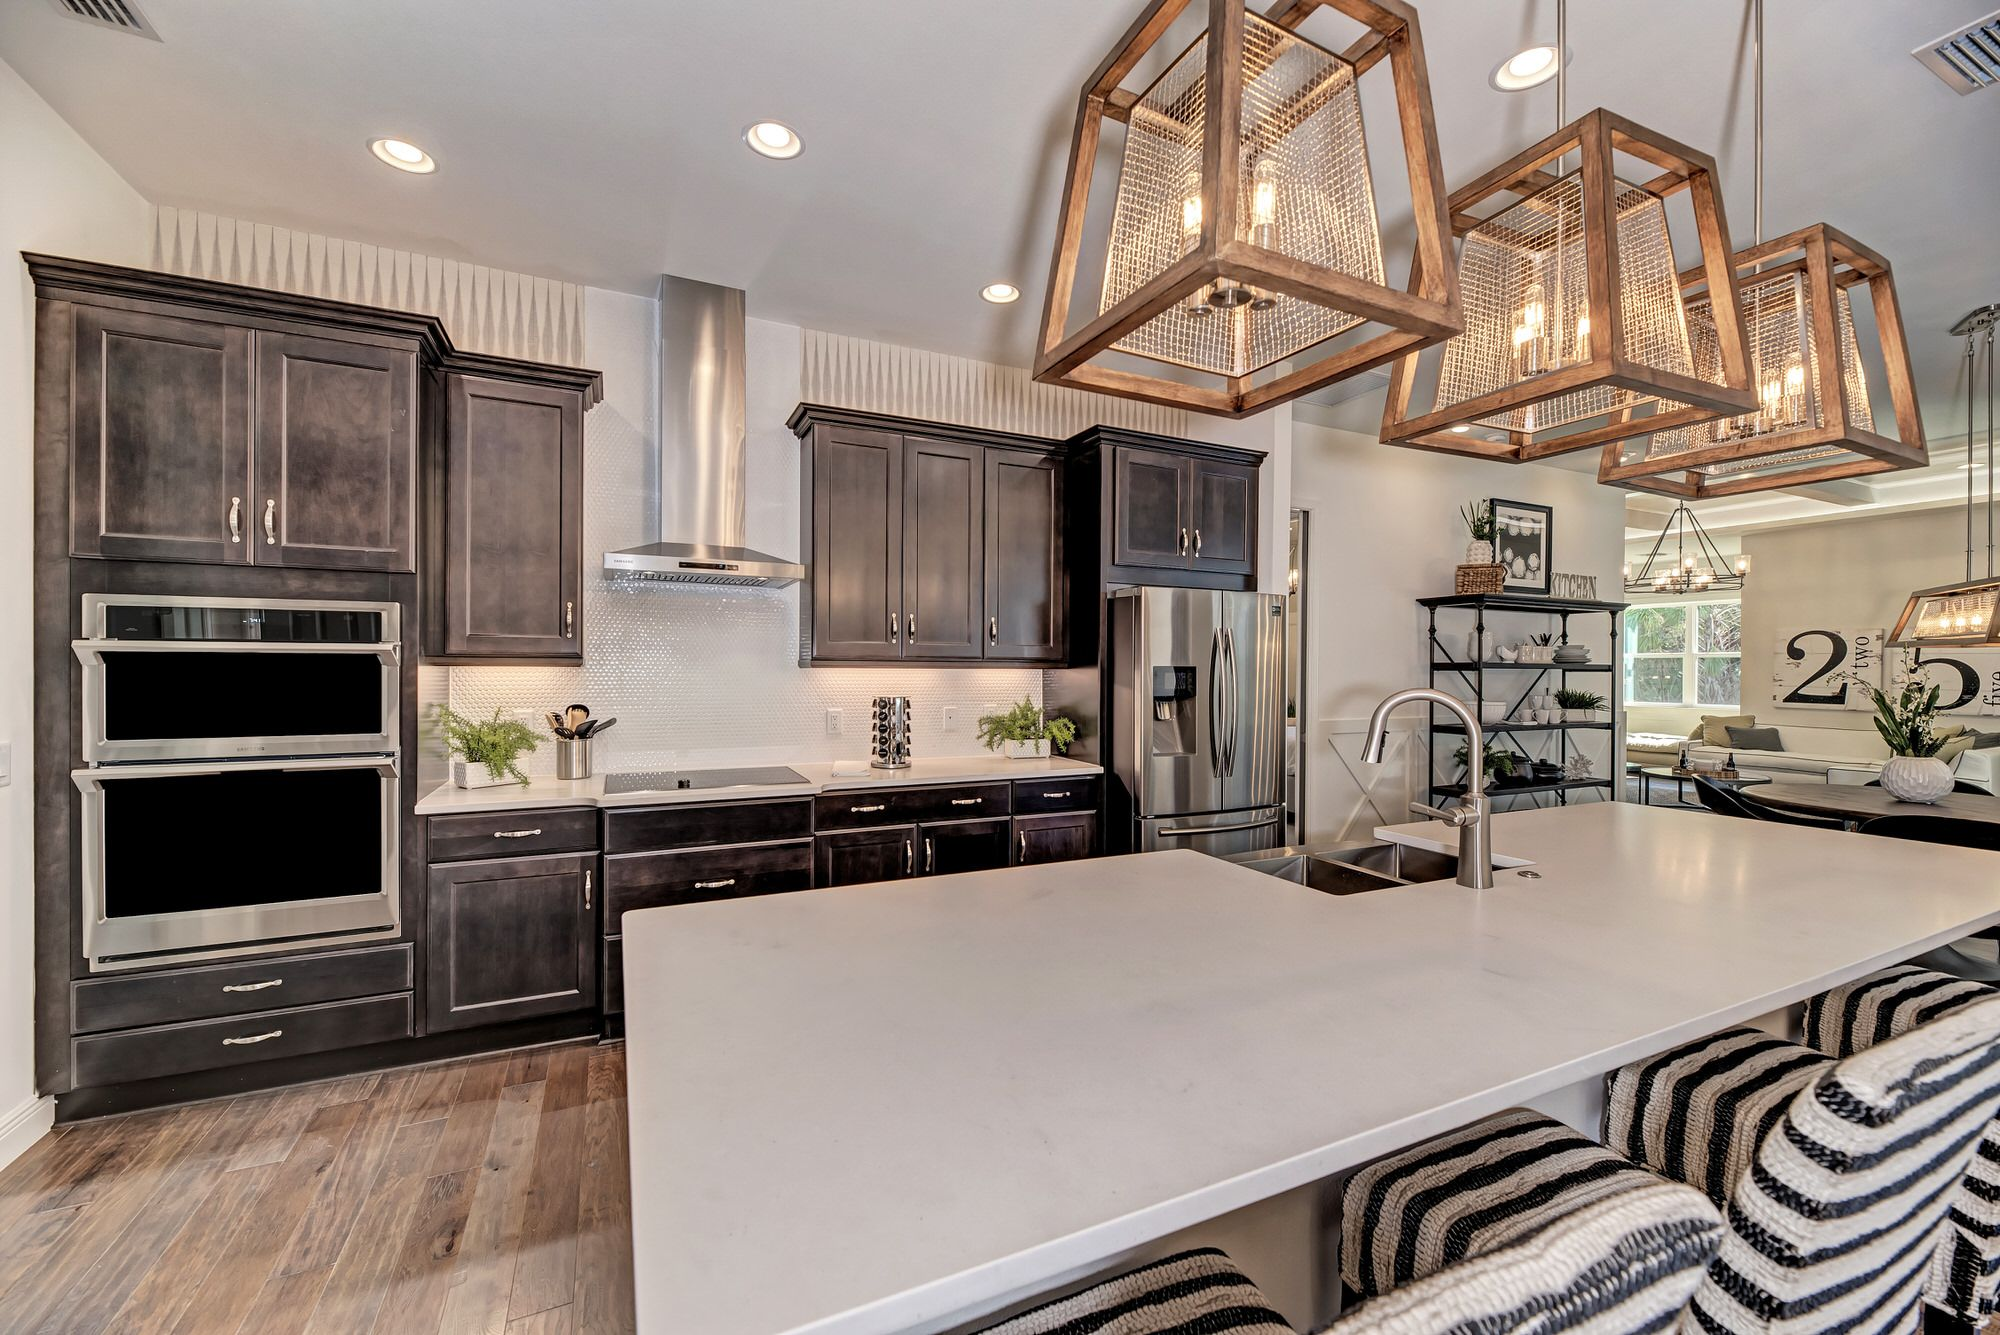 Kitchen featured in the Aruba-The Reserve By Medallion Home in Sarasota-Bradenton, FL